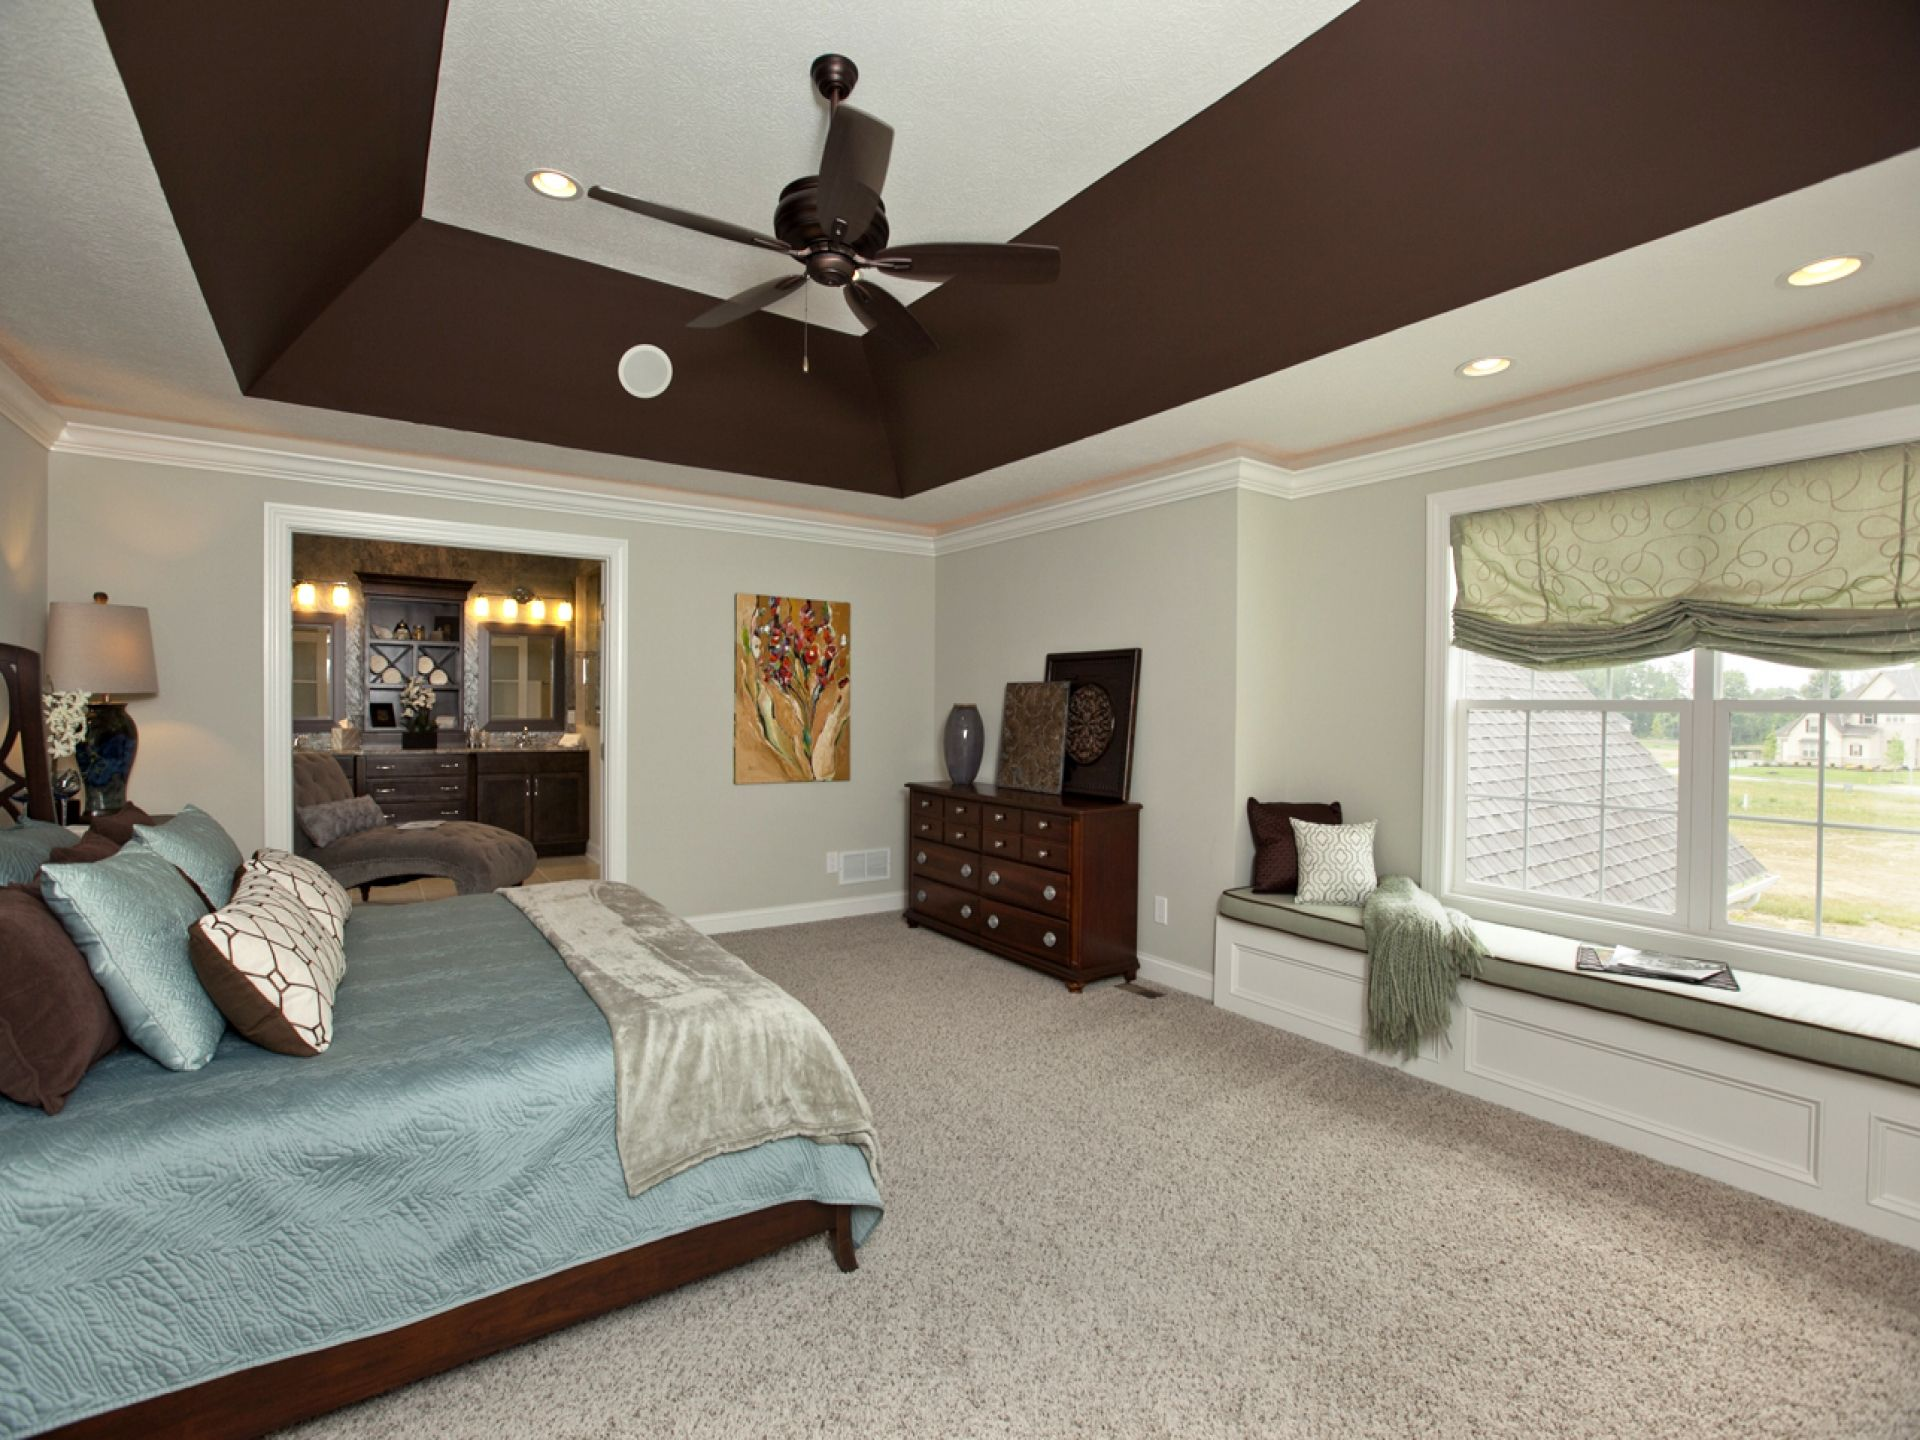 Deep Angled Tray Ceiling In Master Bedroom 3 Pillar Homes Bedroom Tray Ceiling Pinterest